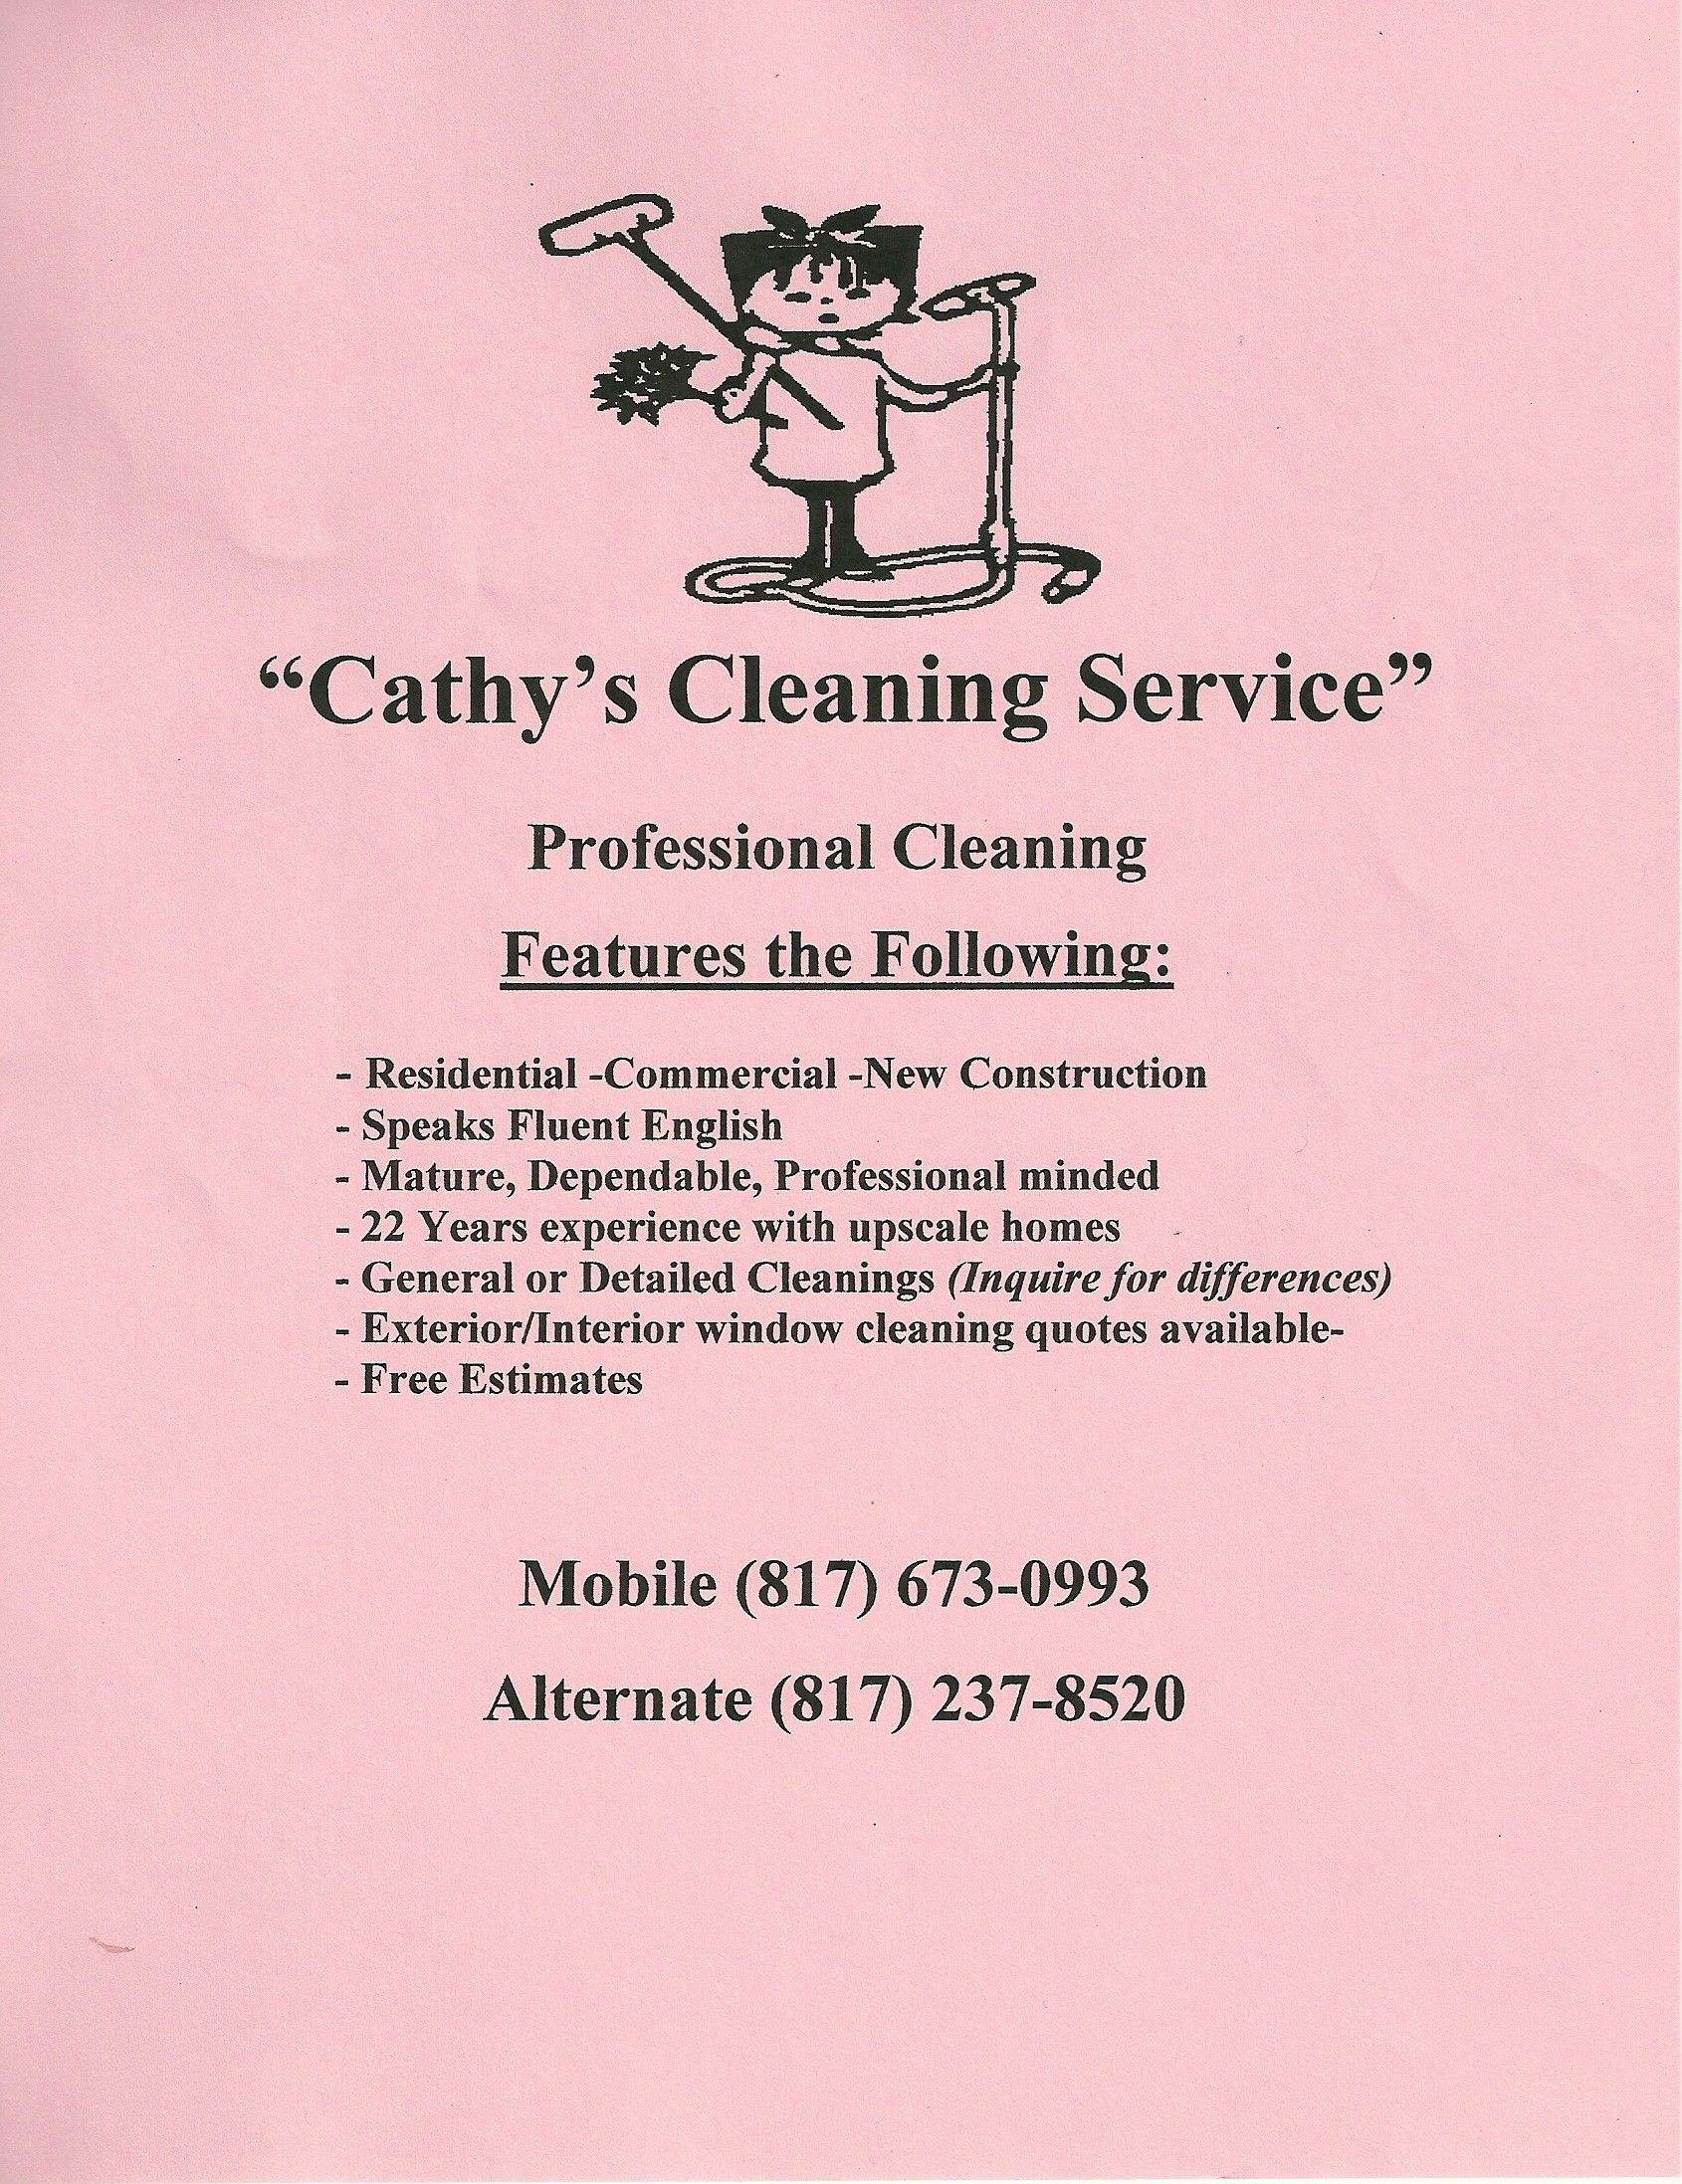 House Cleaning Services – House Cleaning Flyer Template